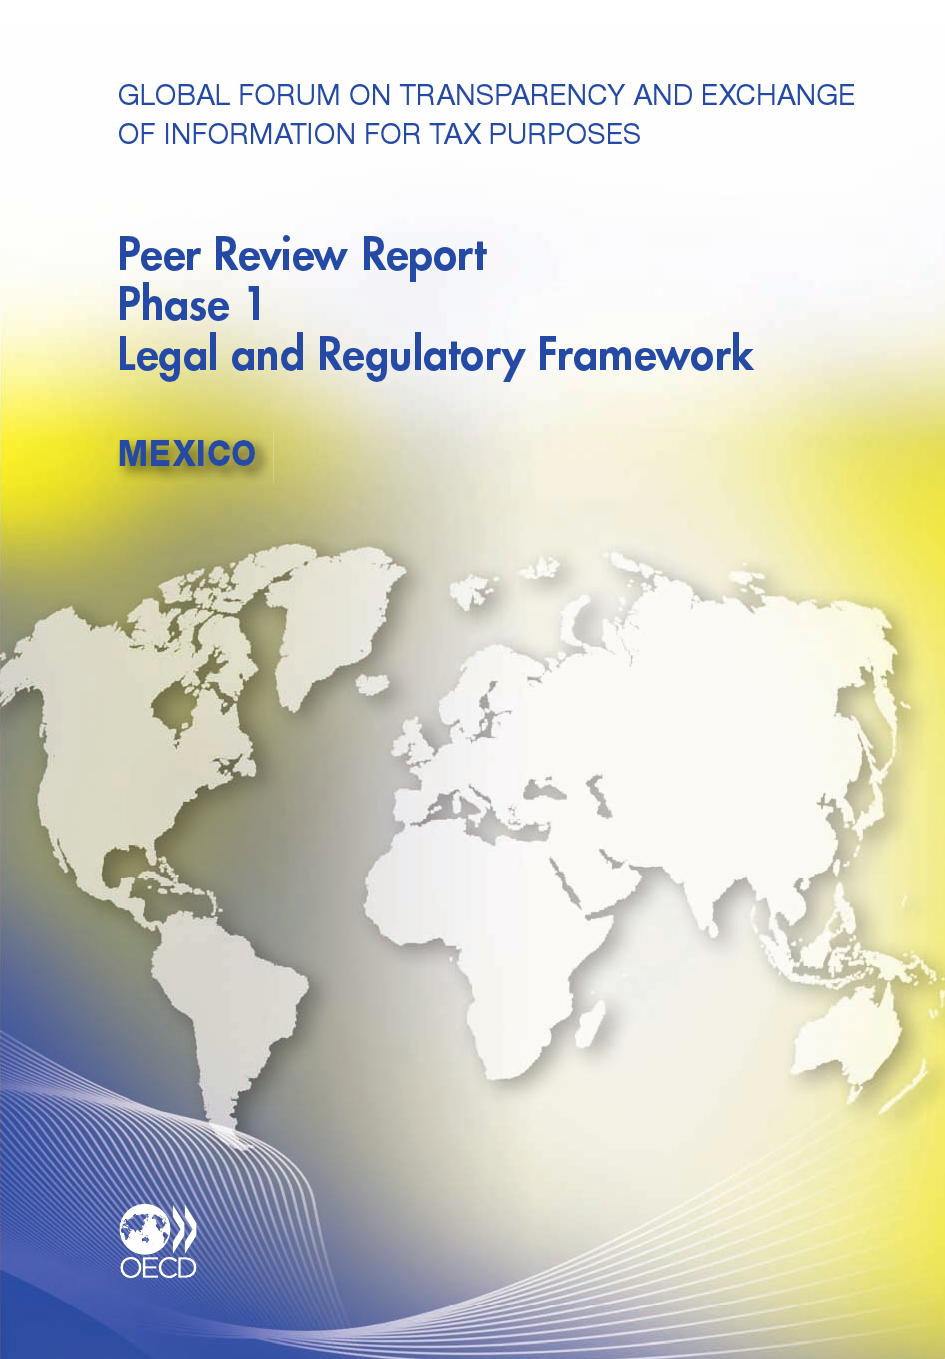 Global Forum on Transparency and Exchange of Information for Tax Purposes Peer Reviews: Mexico 2012